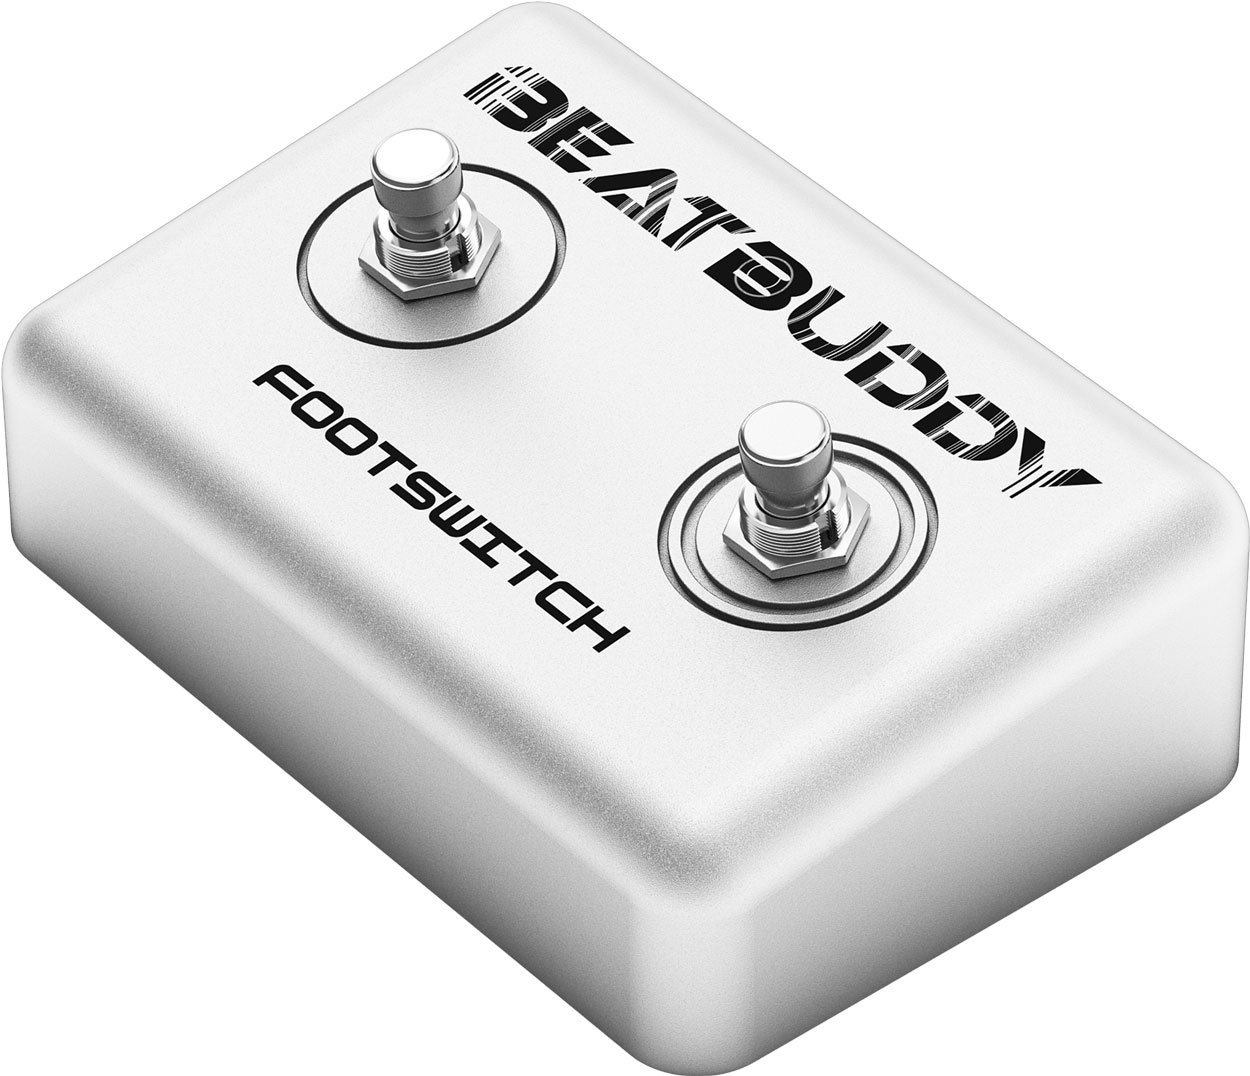 BeatBuddy Dual Momentary Footswitch - 2-button Footswitch for BeatBuddy Drum Machine цена